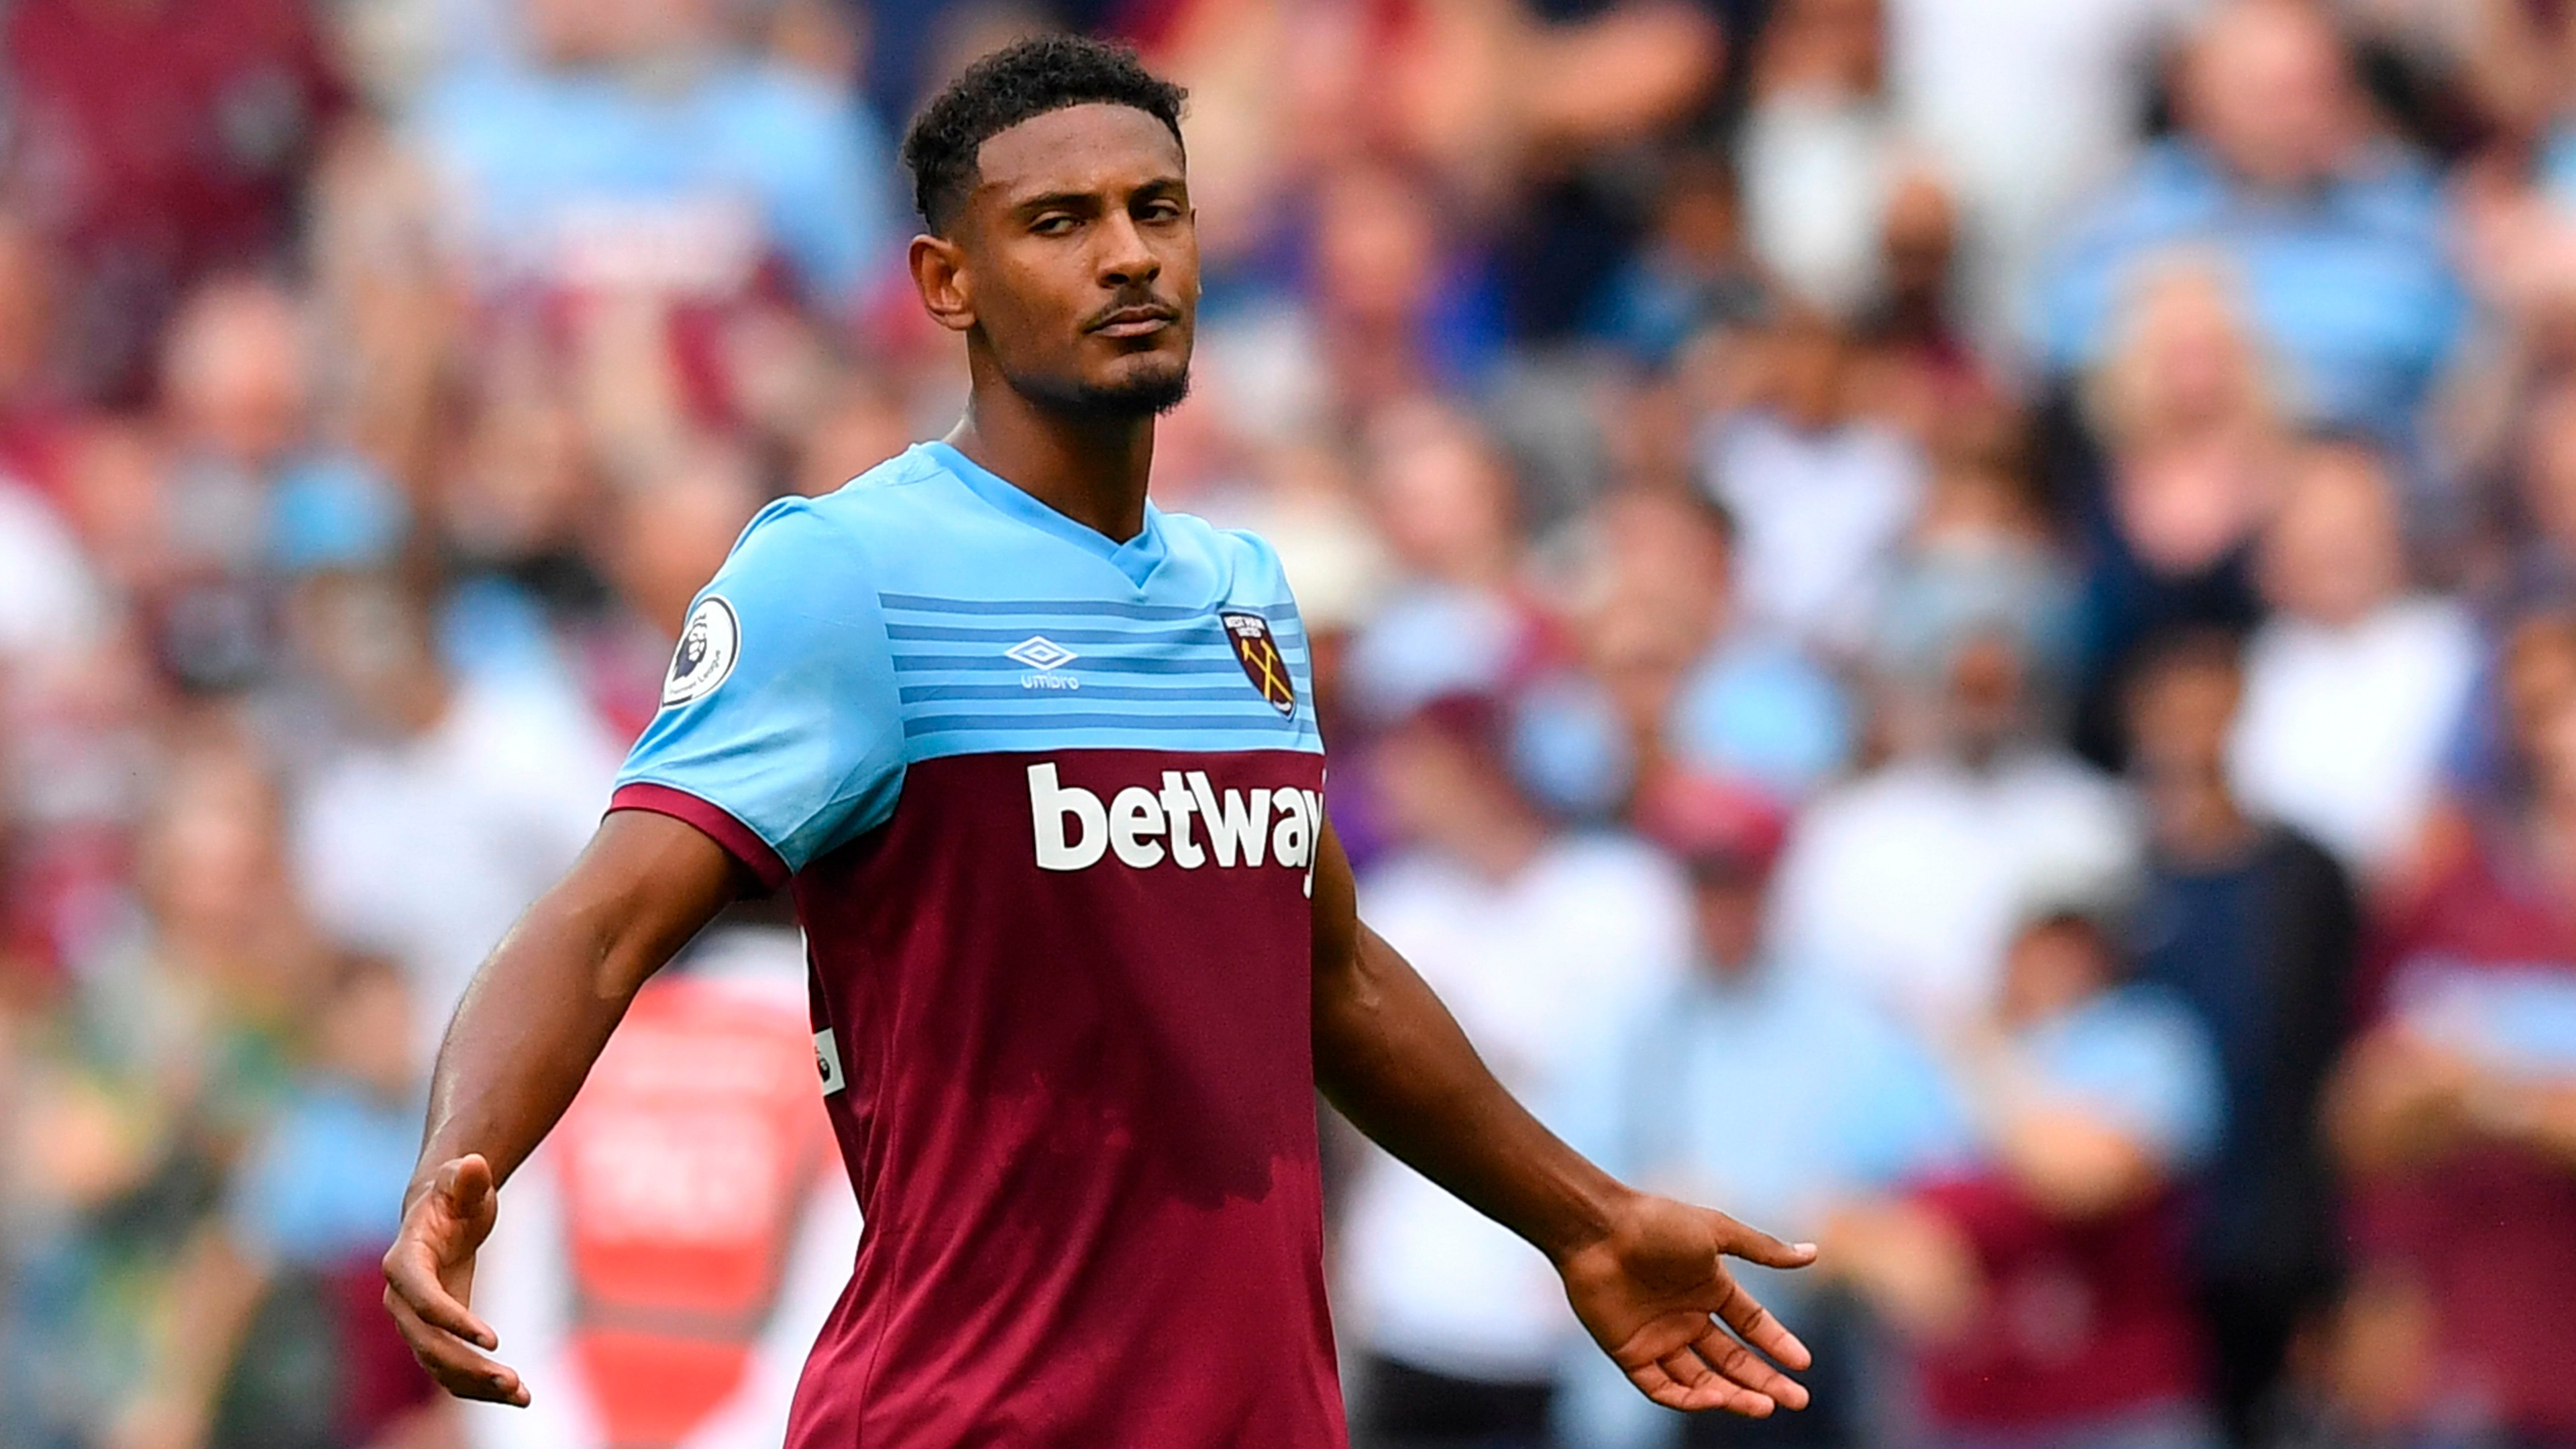 Haller joins Ajax from West Ham in €22.5m club record deal